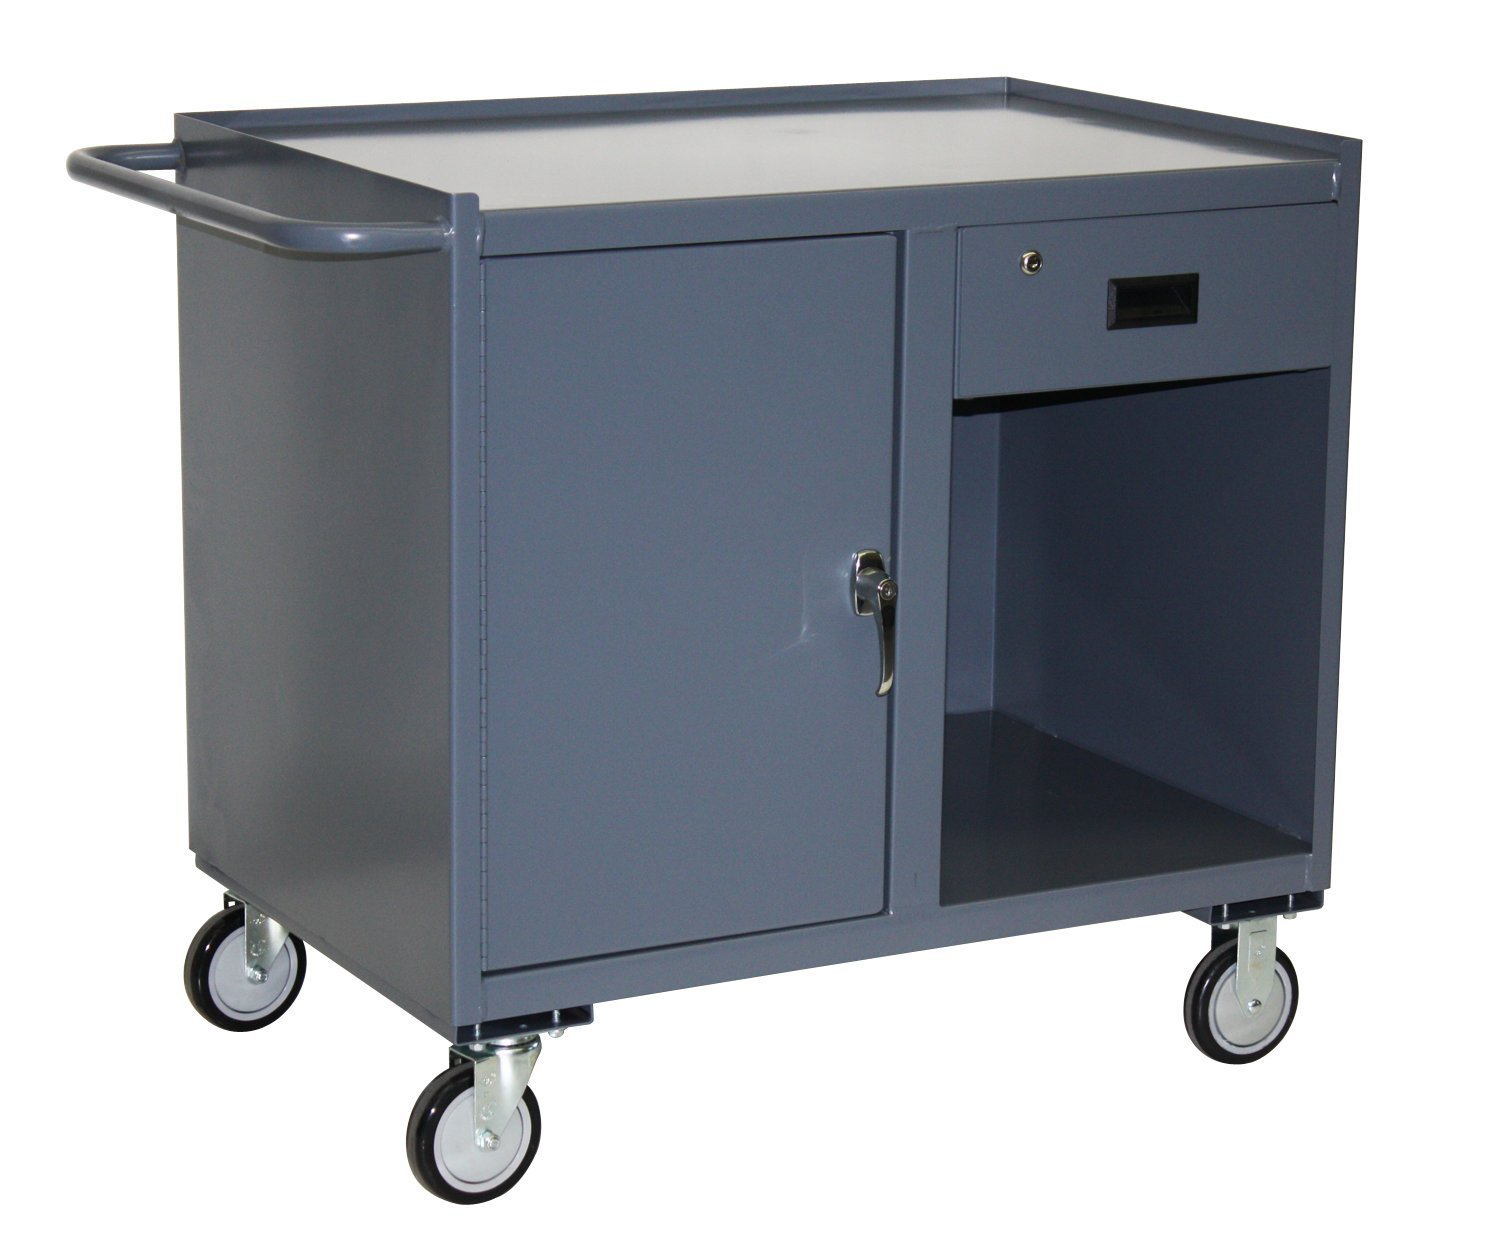 Jamco Products Inc JE136-U5-GP Mobile Cabinet with One Drawer & One Door 18 x 36, with 5 inch x 1 4 inch Urethane Casters, Two Rigid, Two Swivel, Powder Coated Gray,